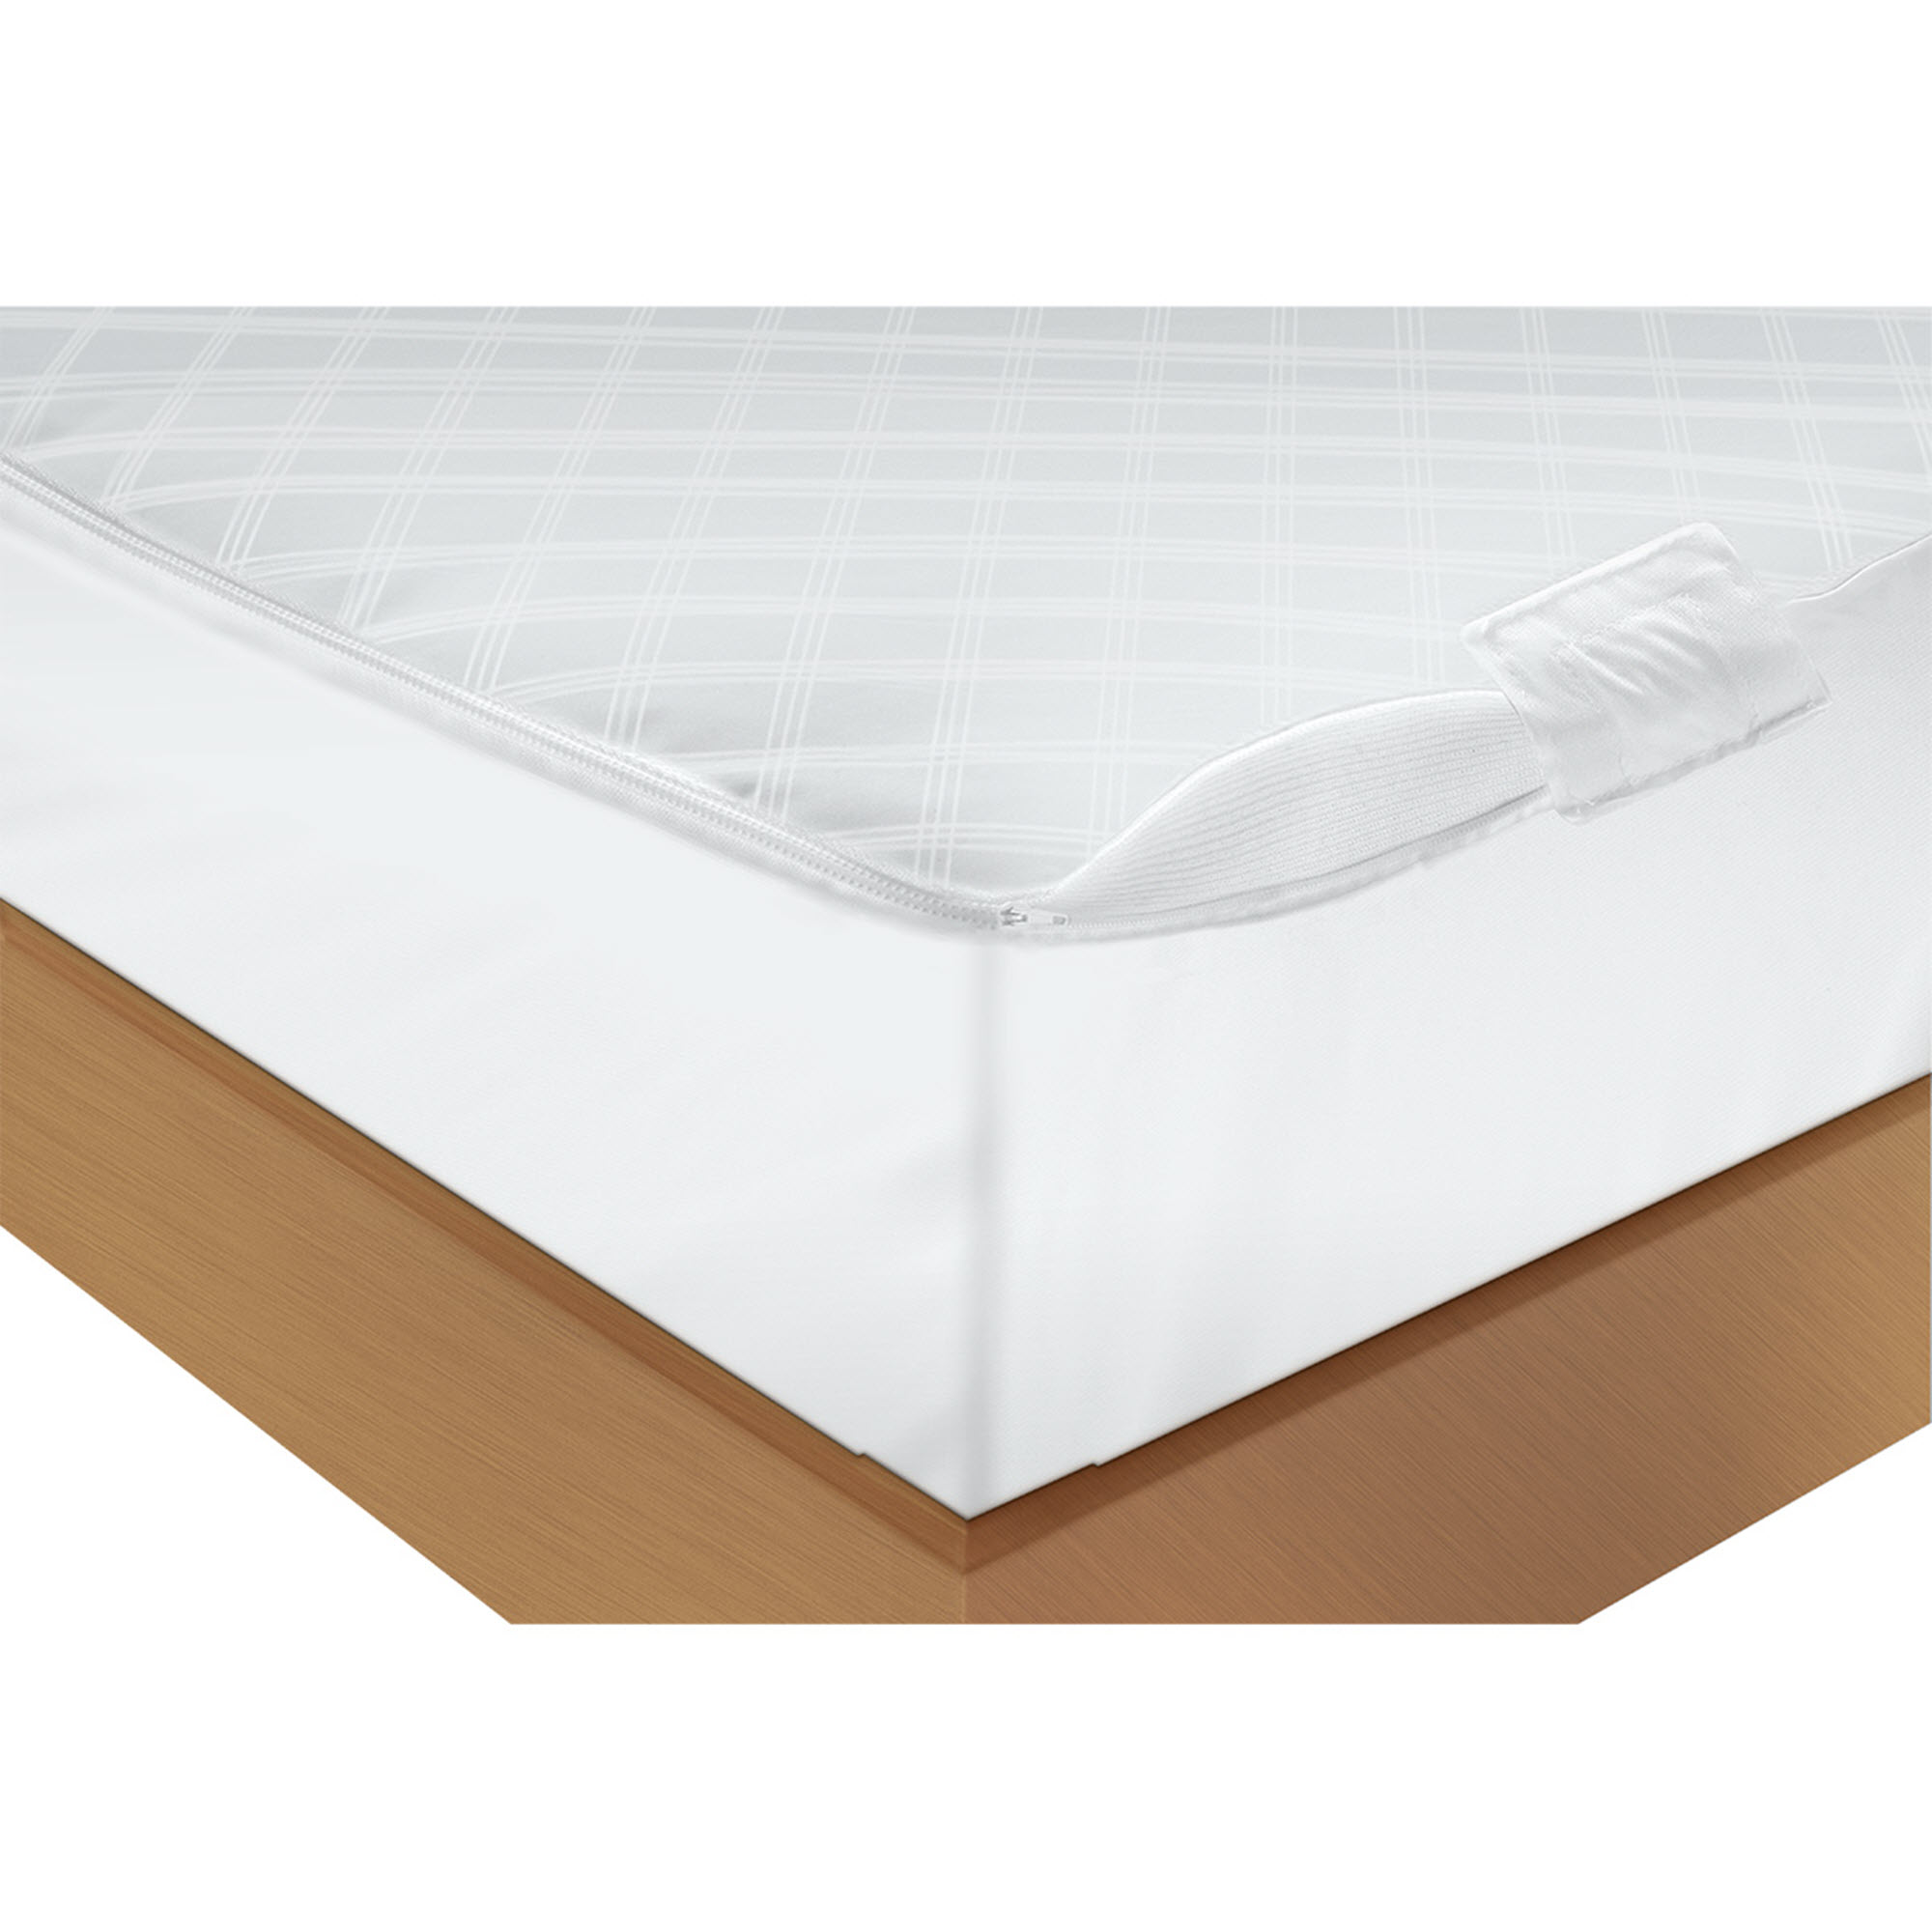 bags walmart com bag tite seal duty heavy sealable storage mattress ip